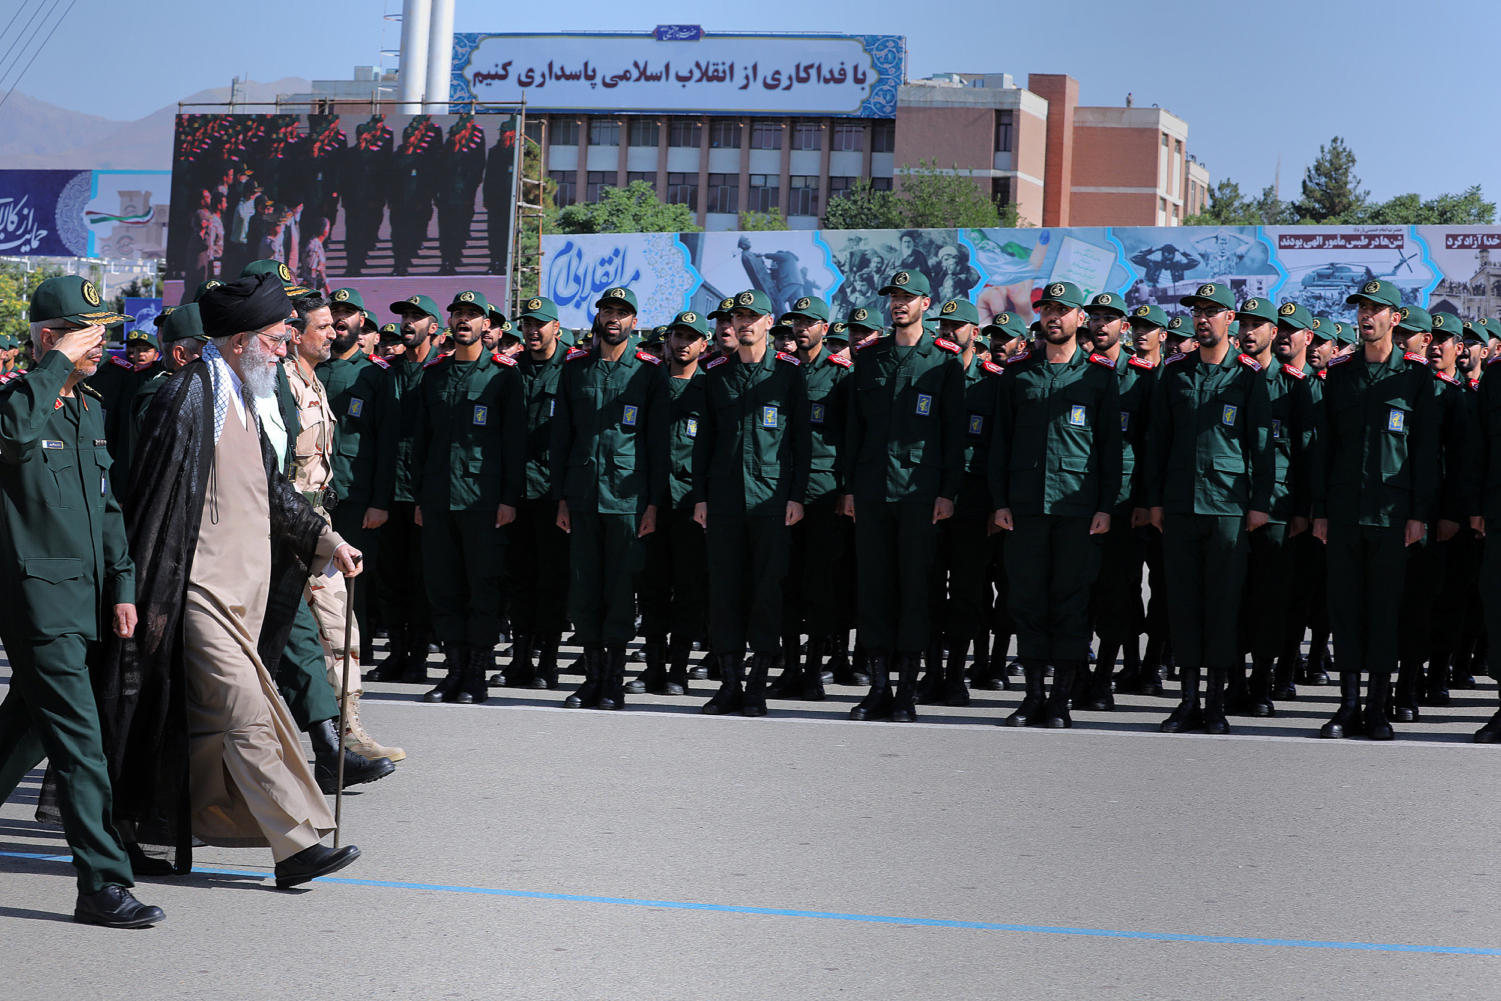 Iranian Supreme Leader Ayatollah Seyyed Ali Khamenei attended the graduation ceremony of The Islamic Revolutionary Guard Corps (IRGC), held at the military cadets Imam Hussain (a.s.) Officers Academy. Tehran, Iran, June 30, 2018.